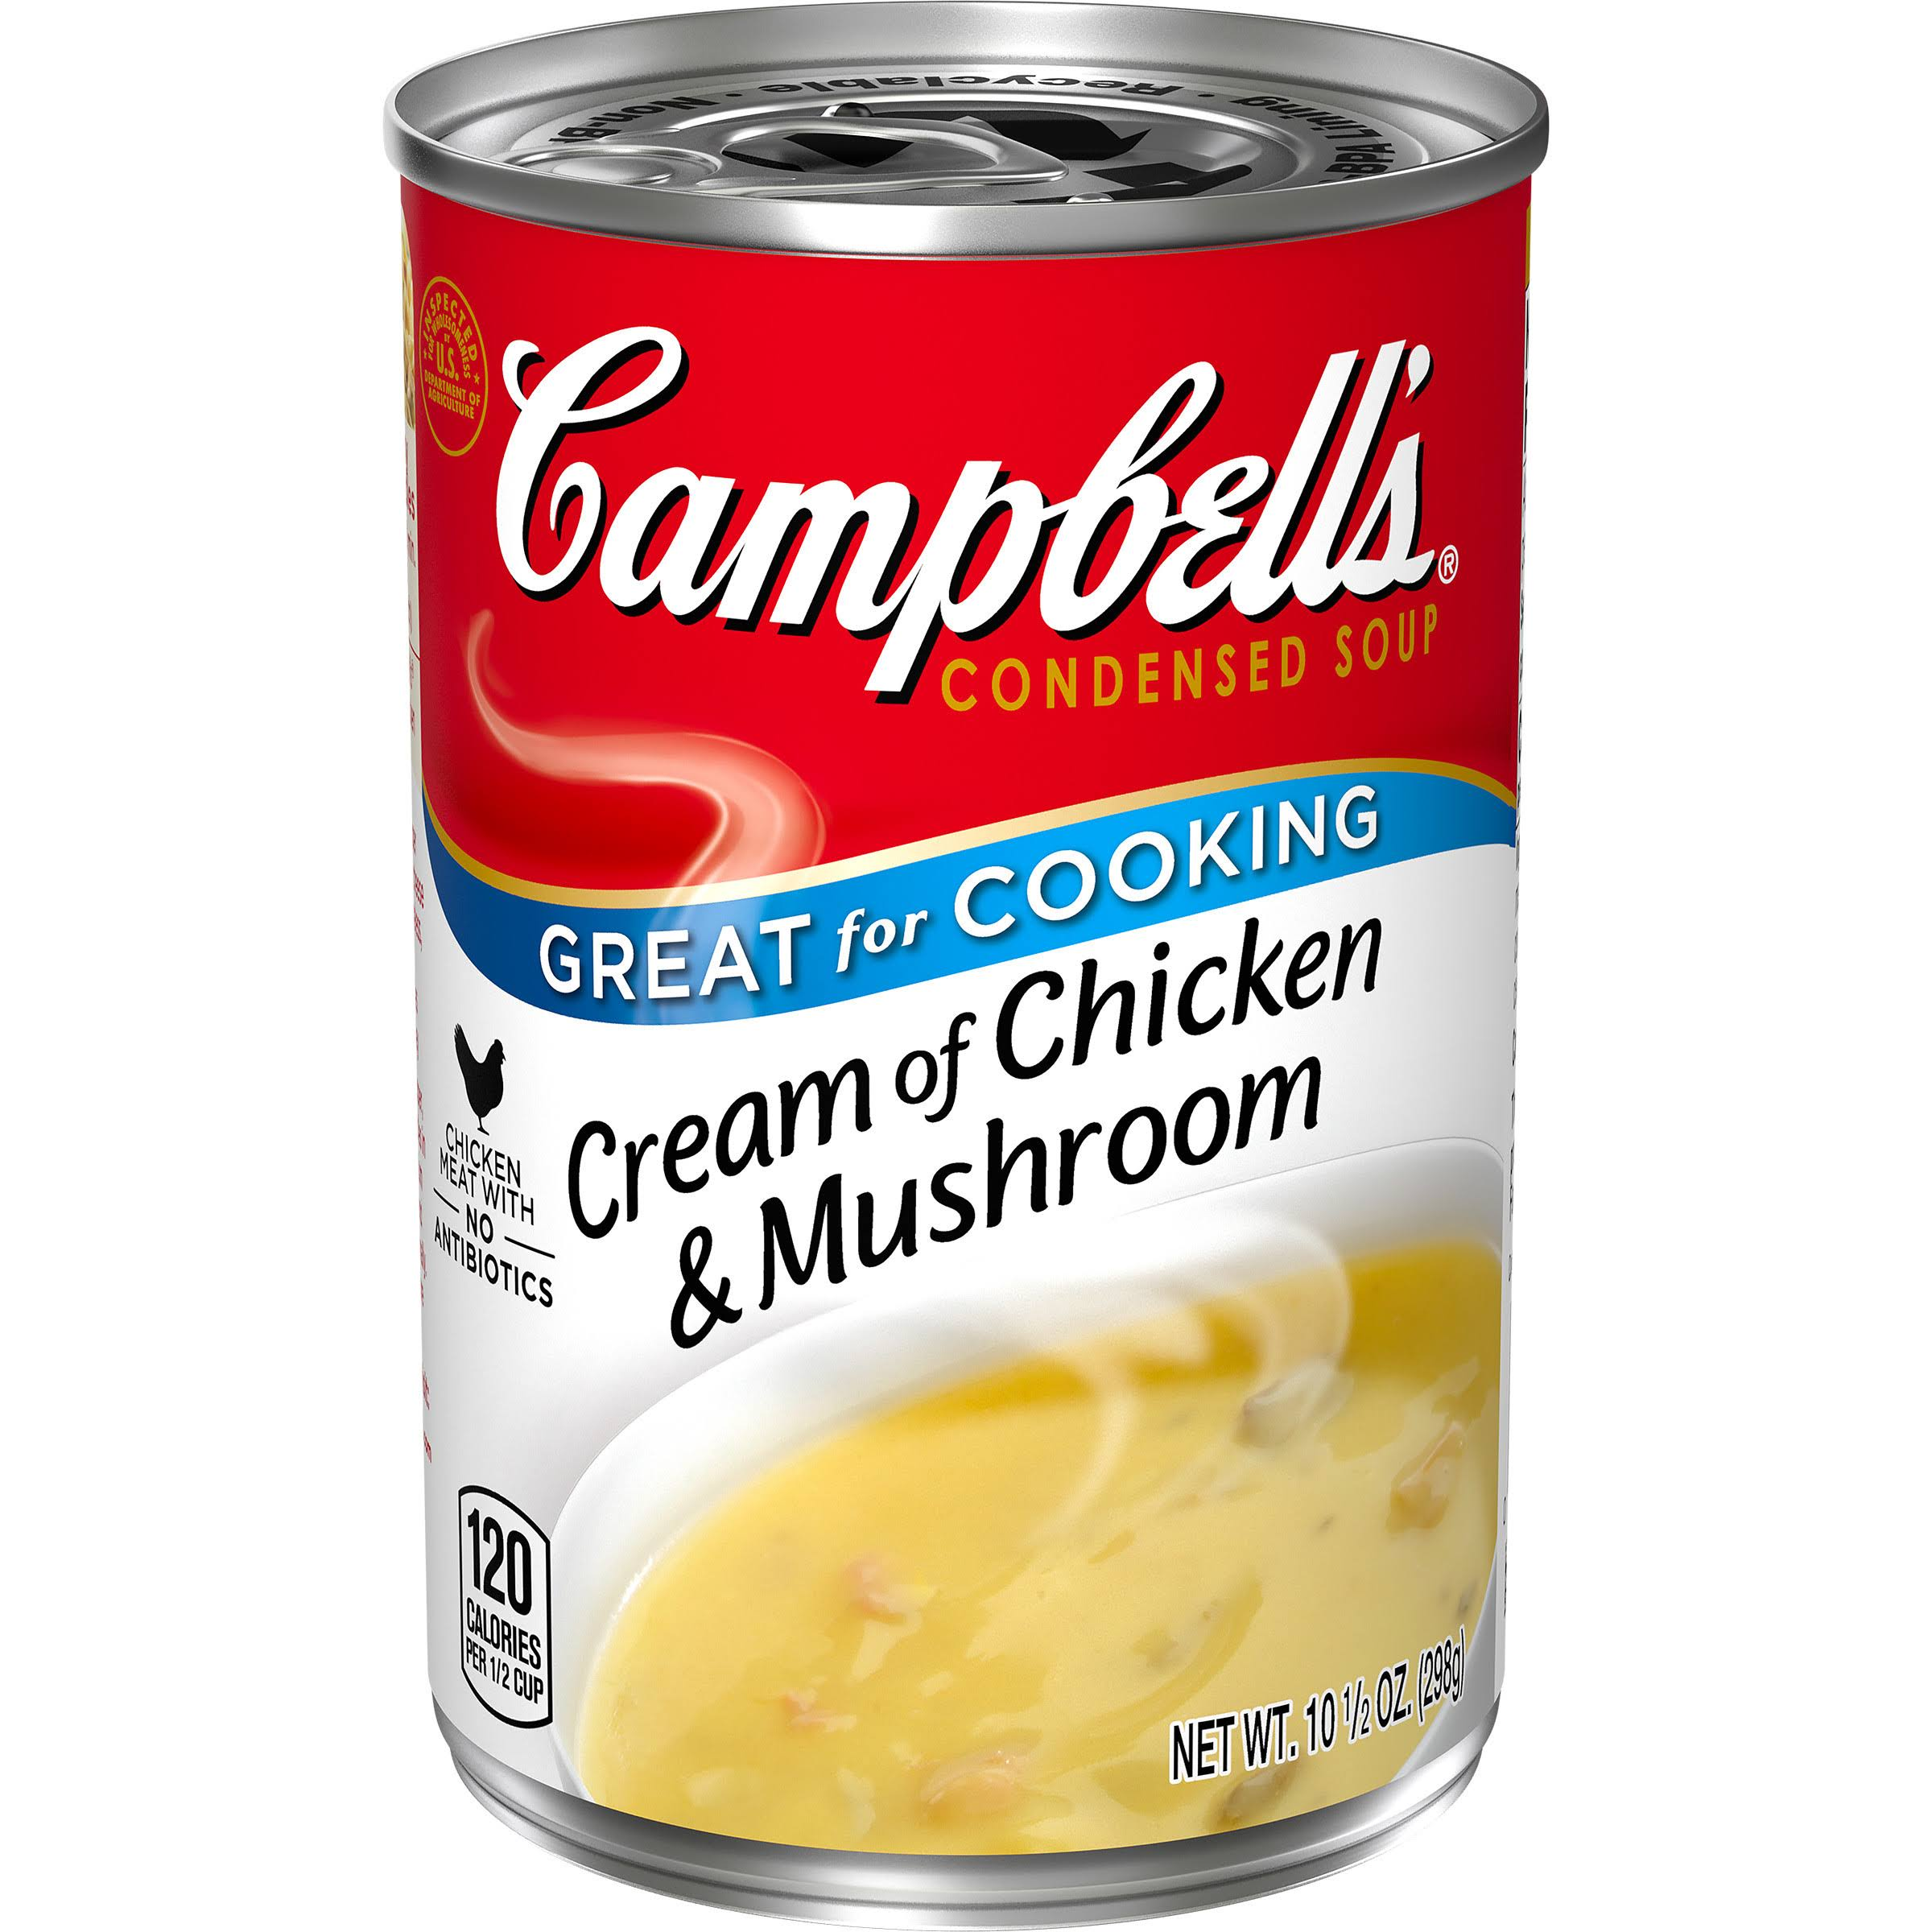 Campbell's Condensed Soup - Cream of Chicken and Mushroom, 10.75oz